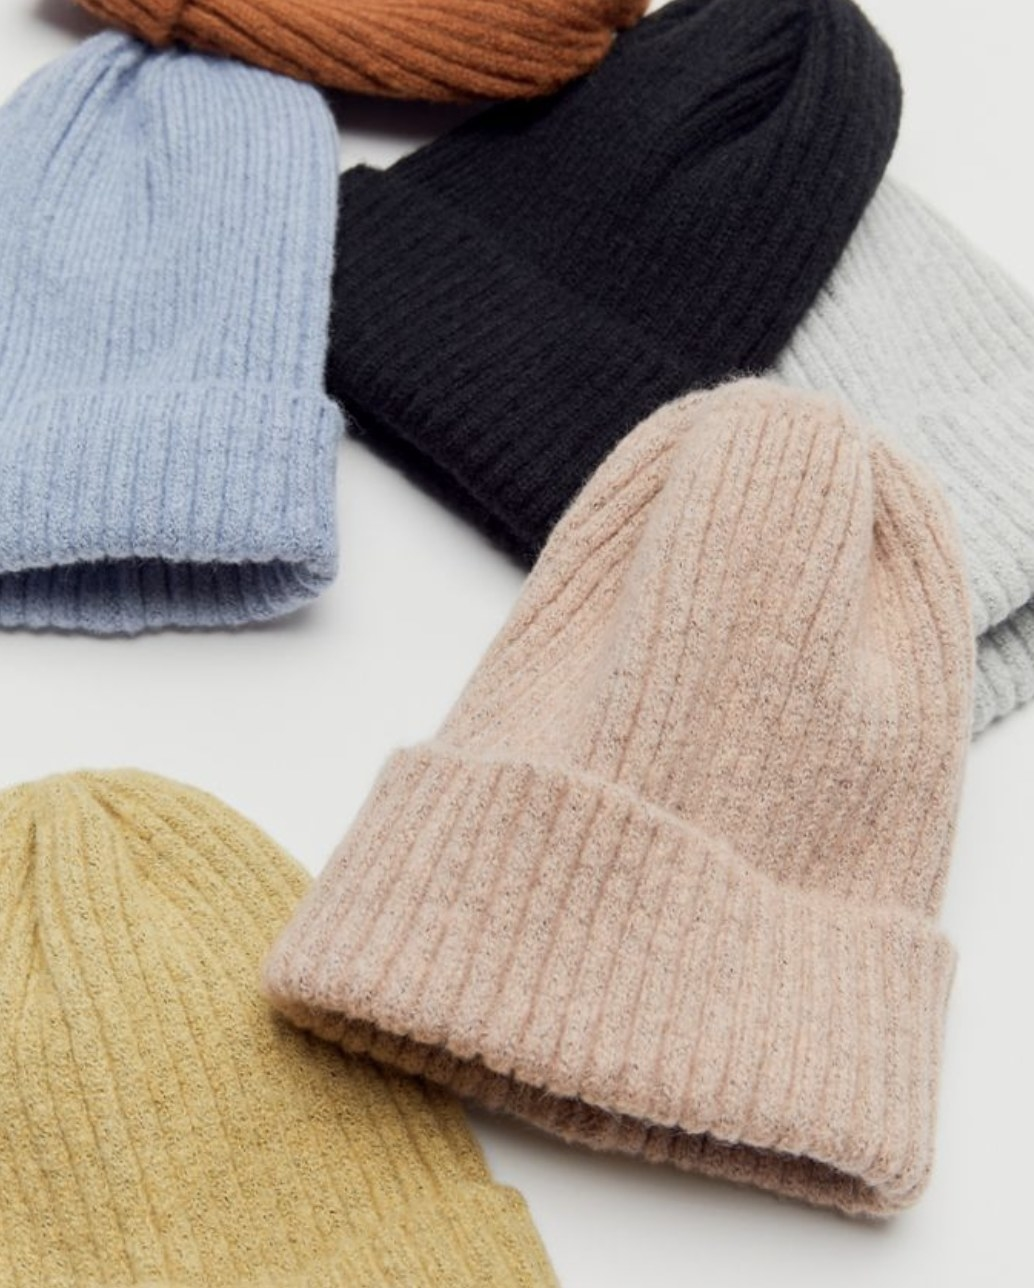 A bunch of knit beanies in various colors